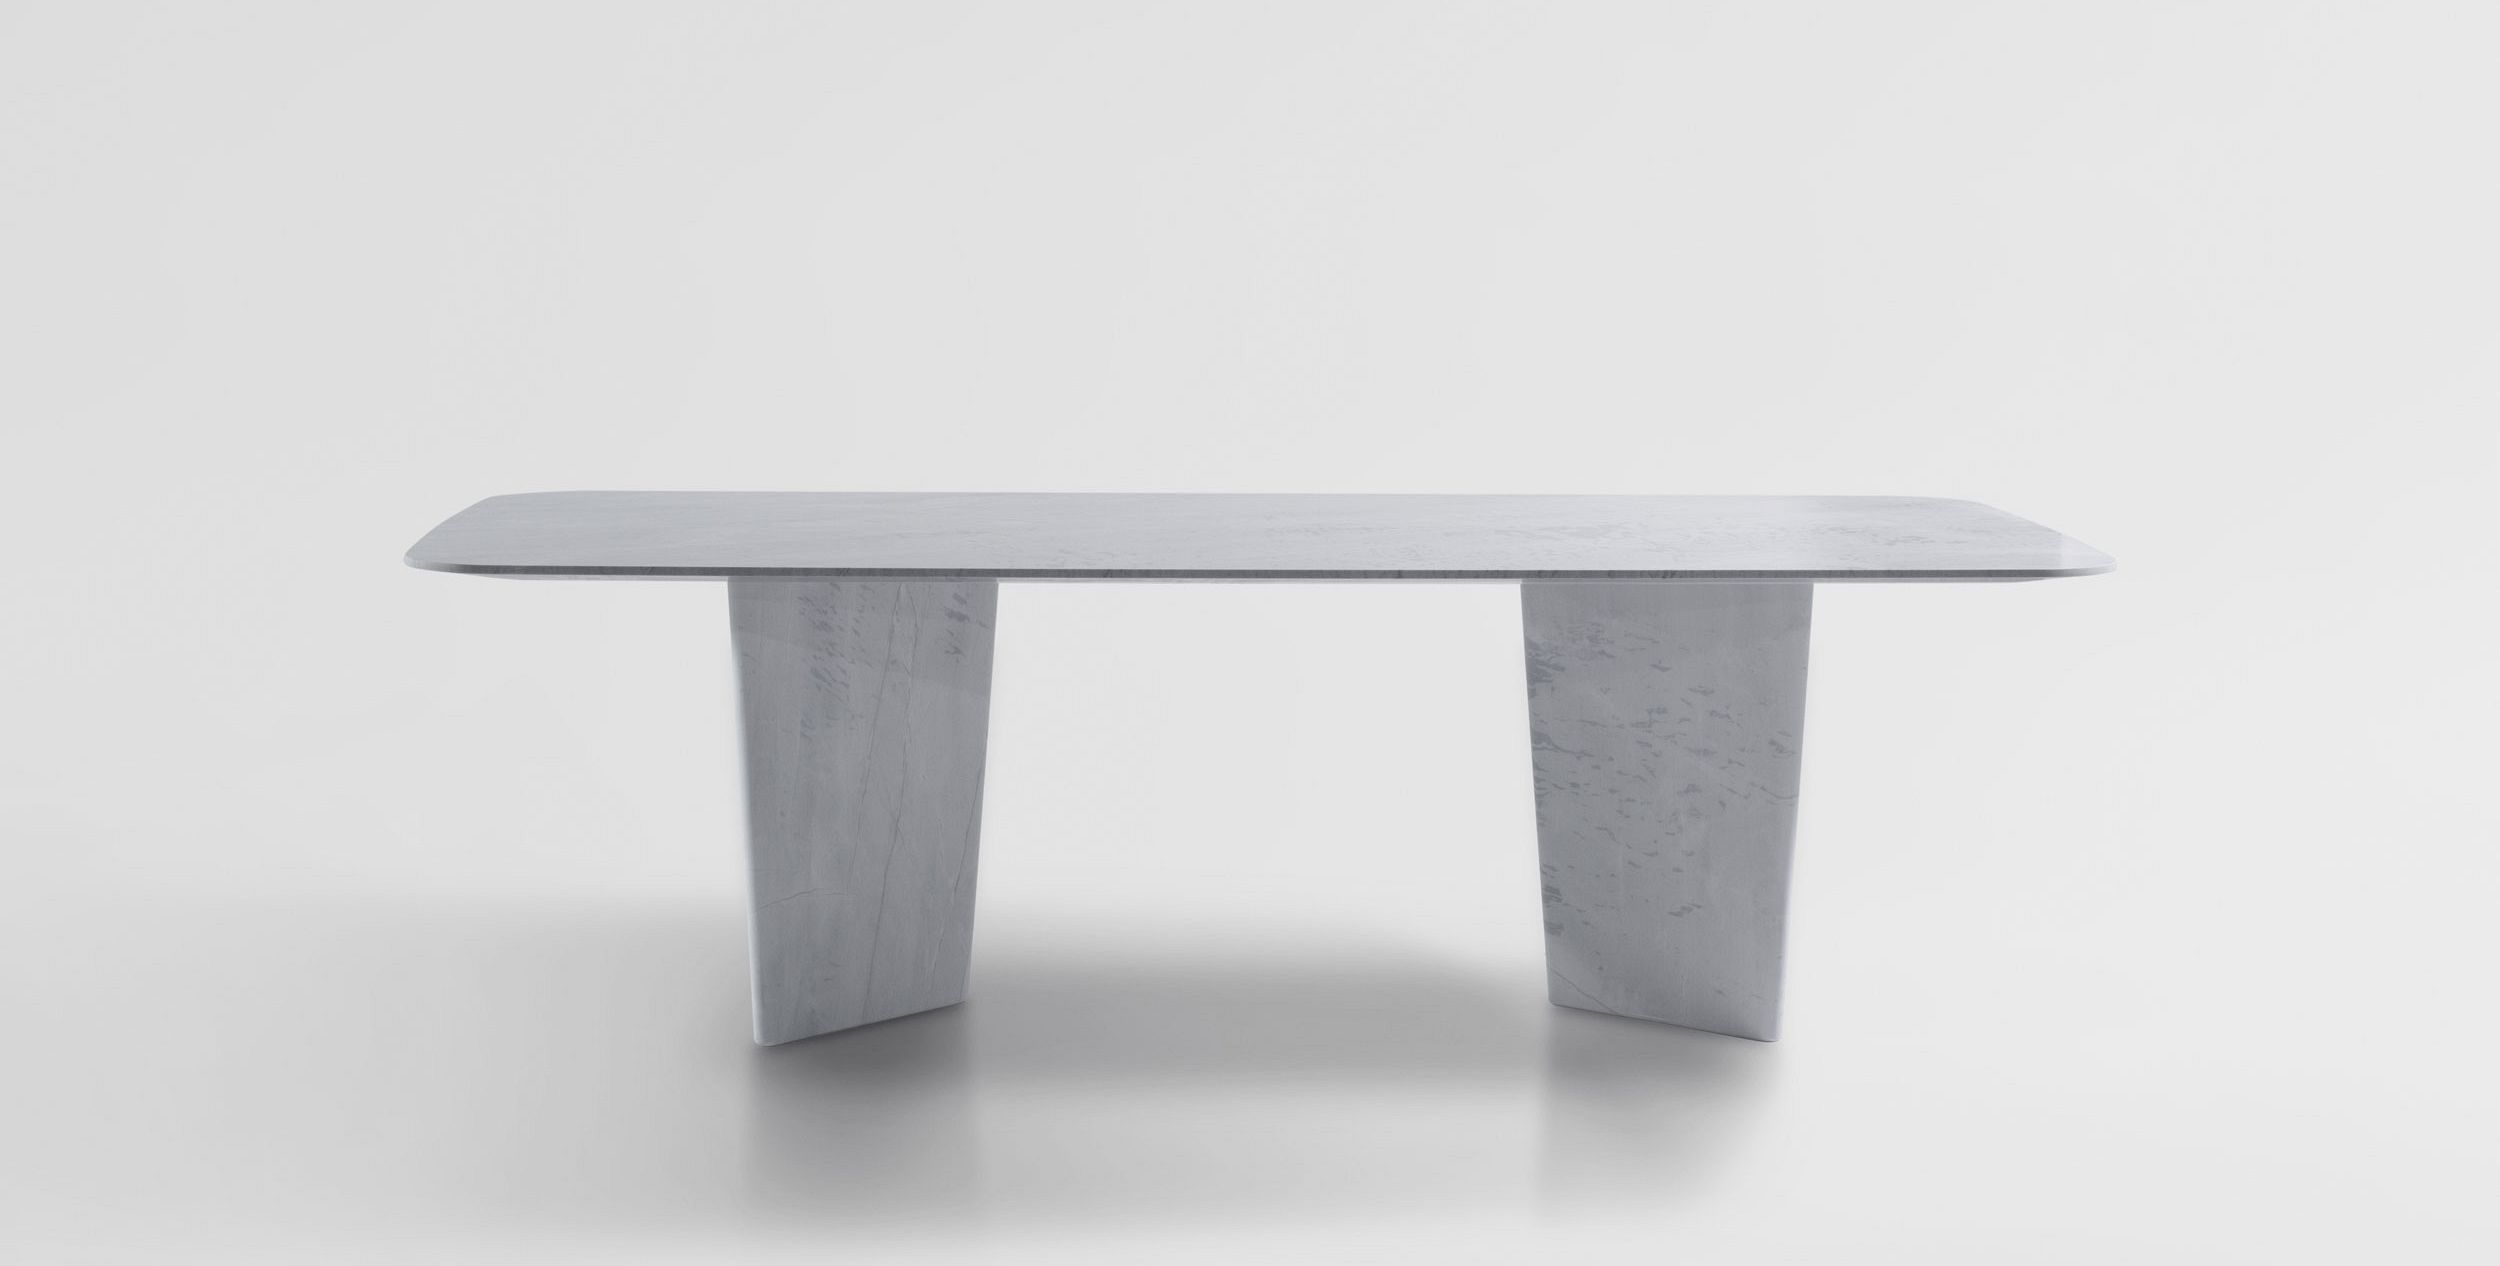 A Slender Rectangular Table Top Rests Upon Two Beautifully Angular Bases.